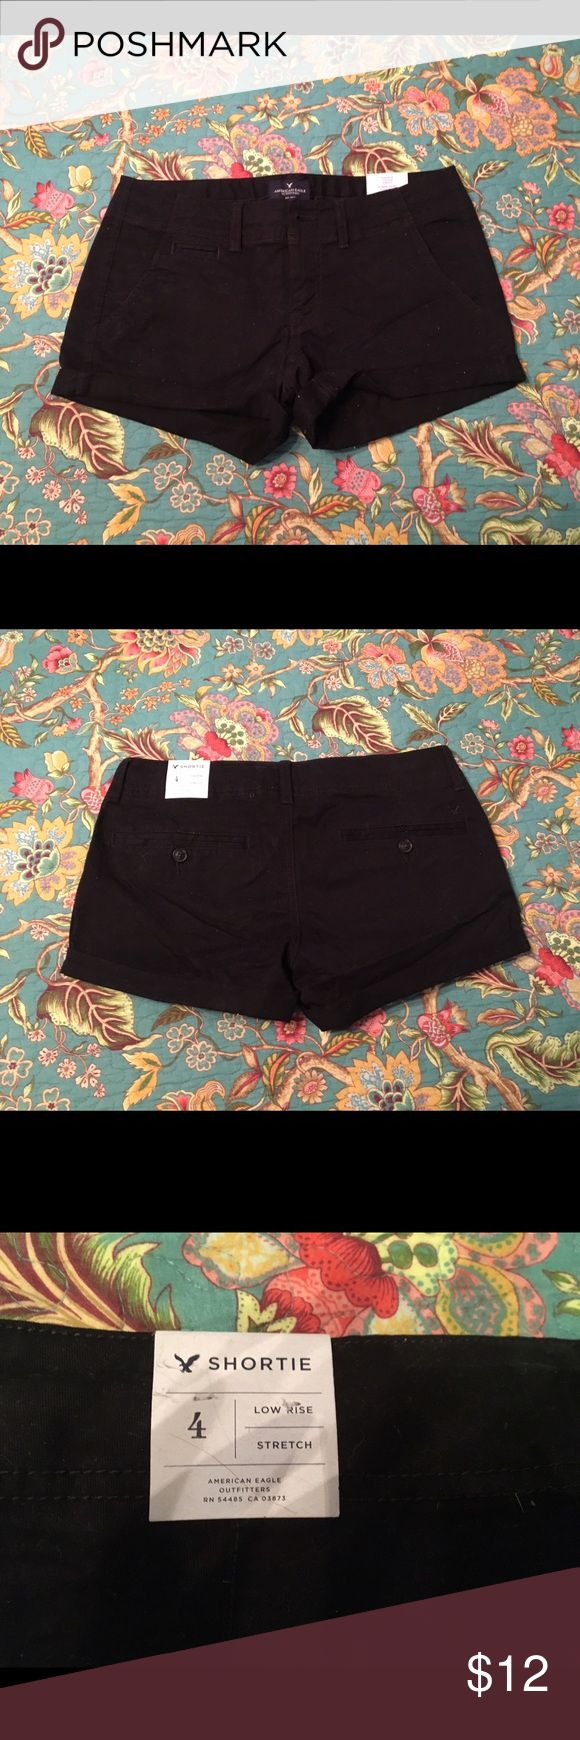 American Eagle Black Chino Shorties. Size 4 - NWT AE black chino shorties. Size 4 - NWT NEVER WORN. American Eagle Outfitters Shorts